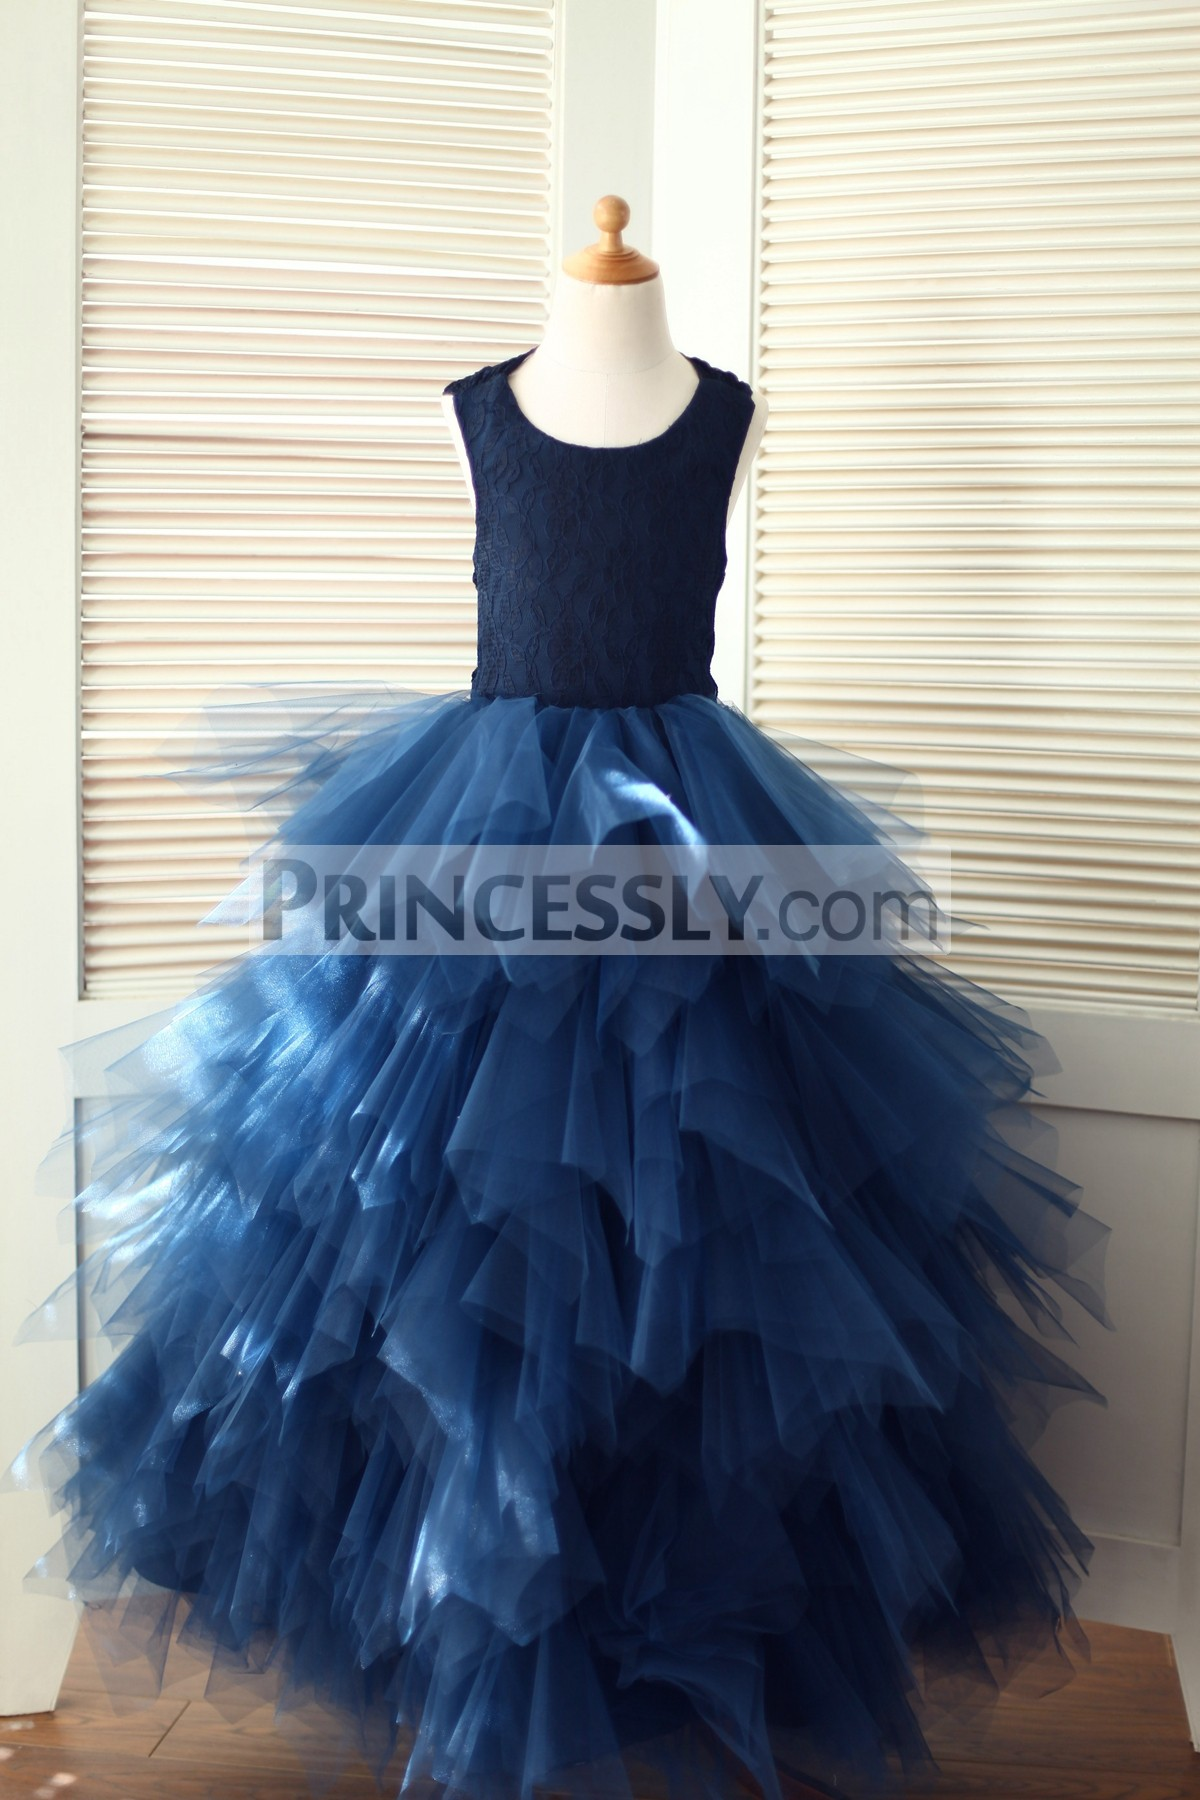 Navy Blue Lace Feathered Tulle Wedding Flower Girl Dress